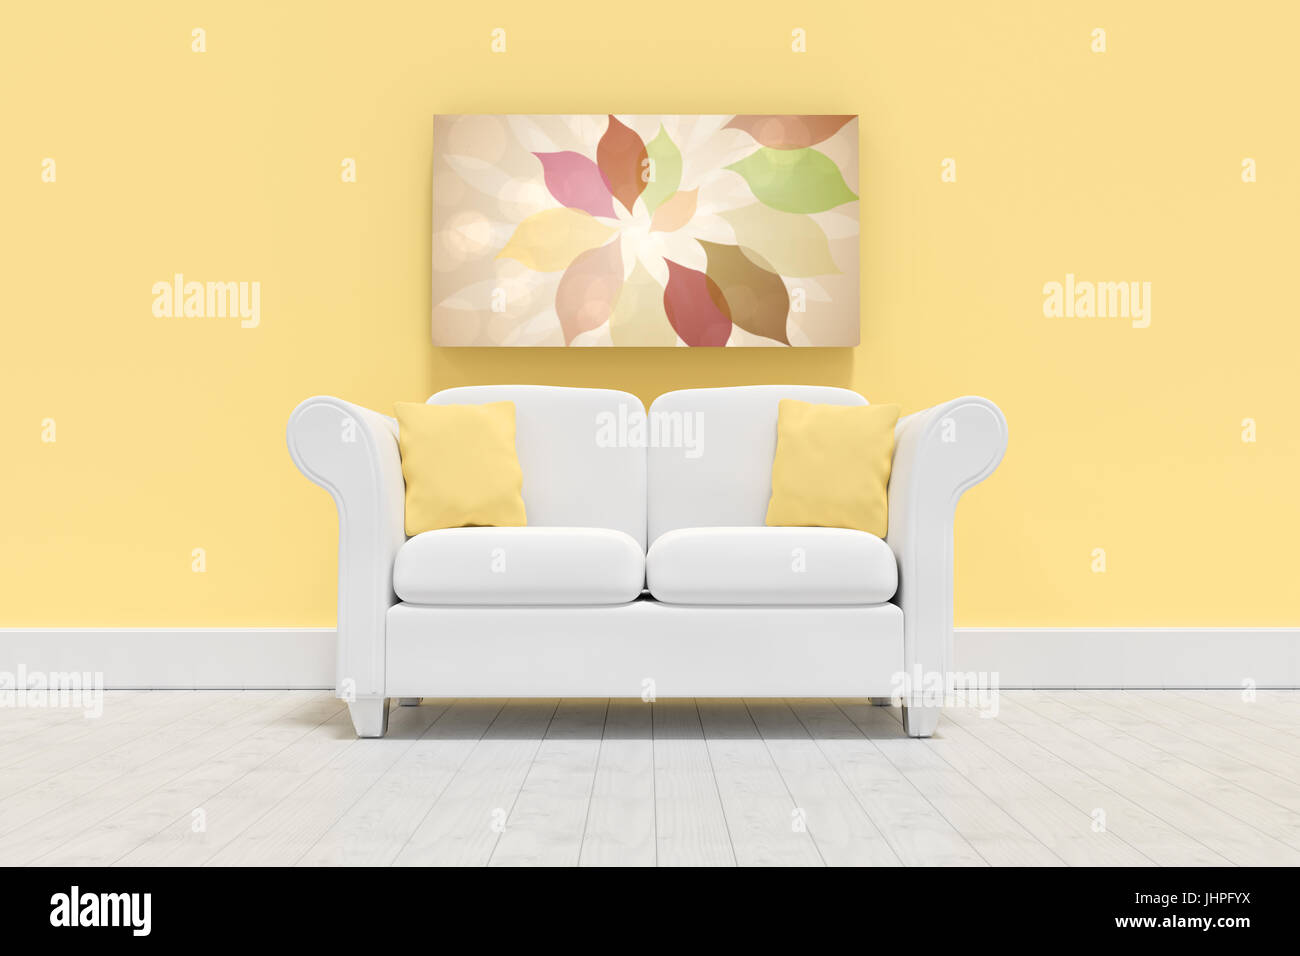 Empty couch against against yellow  against autumnal leaf pattern in warm tones - Stock Image